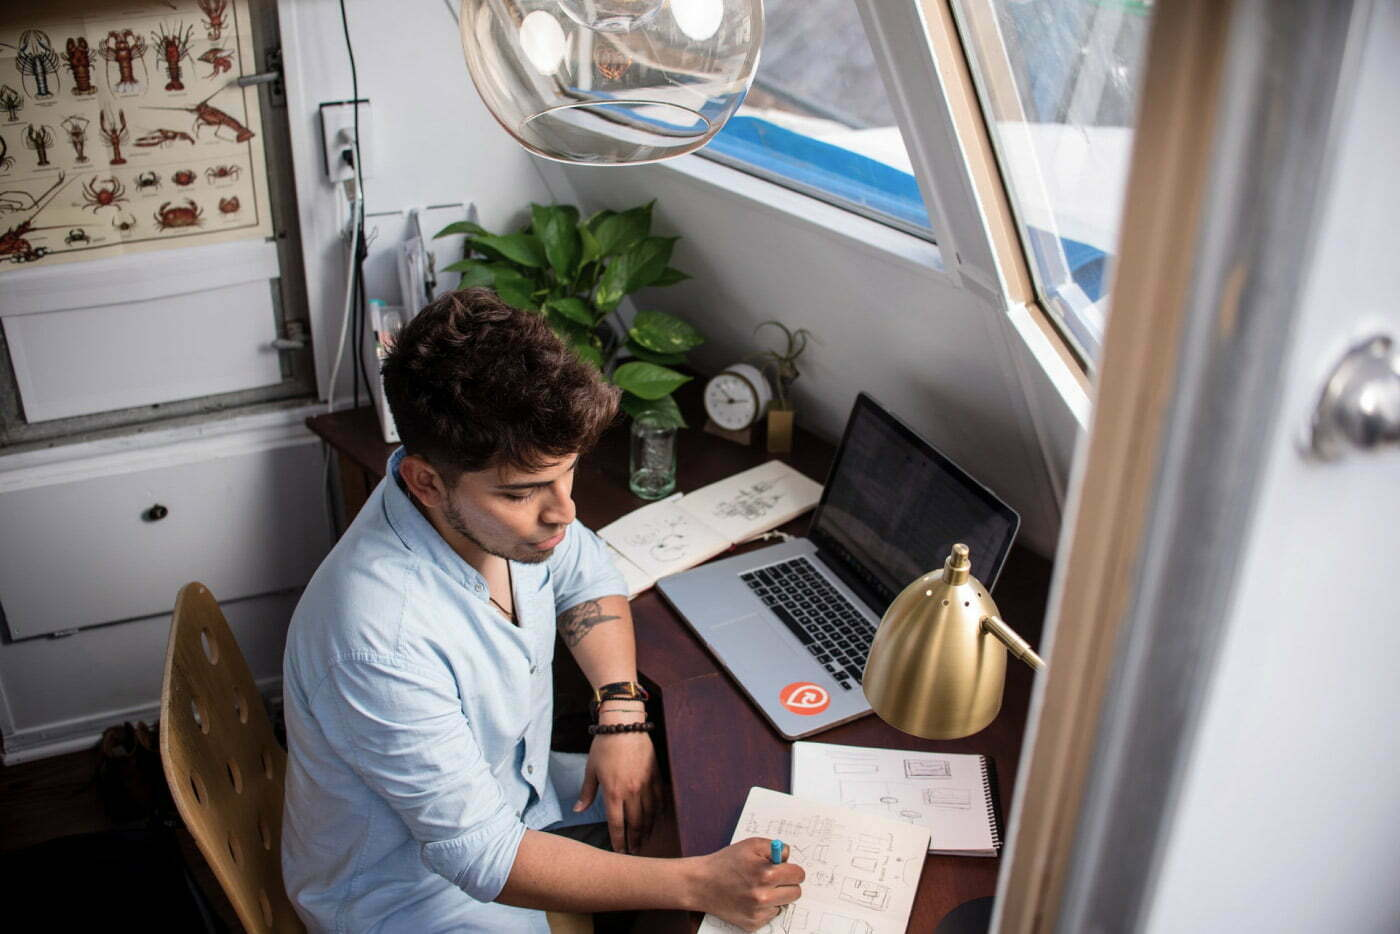 A person in a blue shirt sitting at a desk in front of a laptop writing something in his notebook.